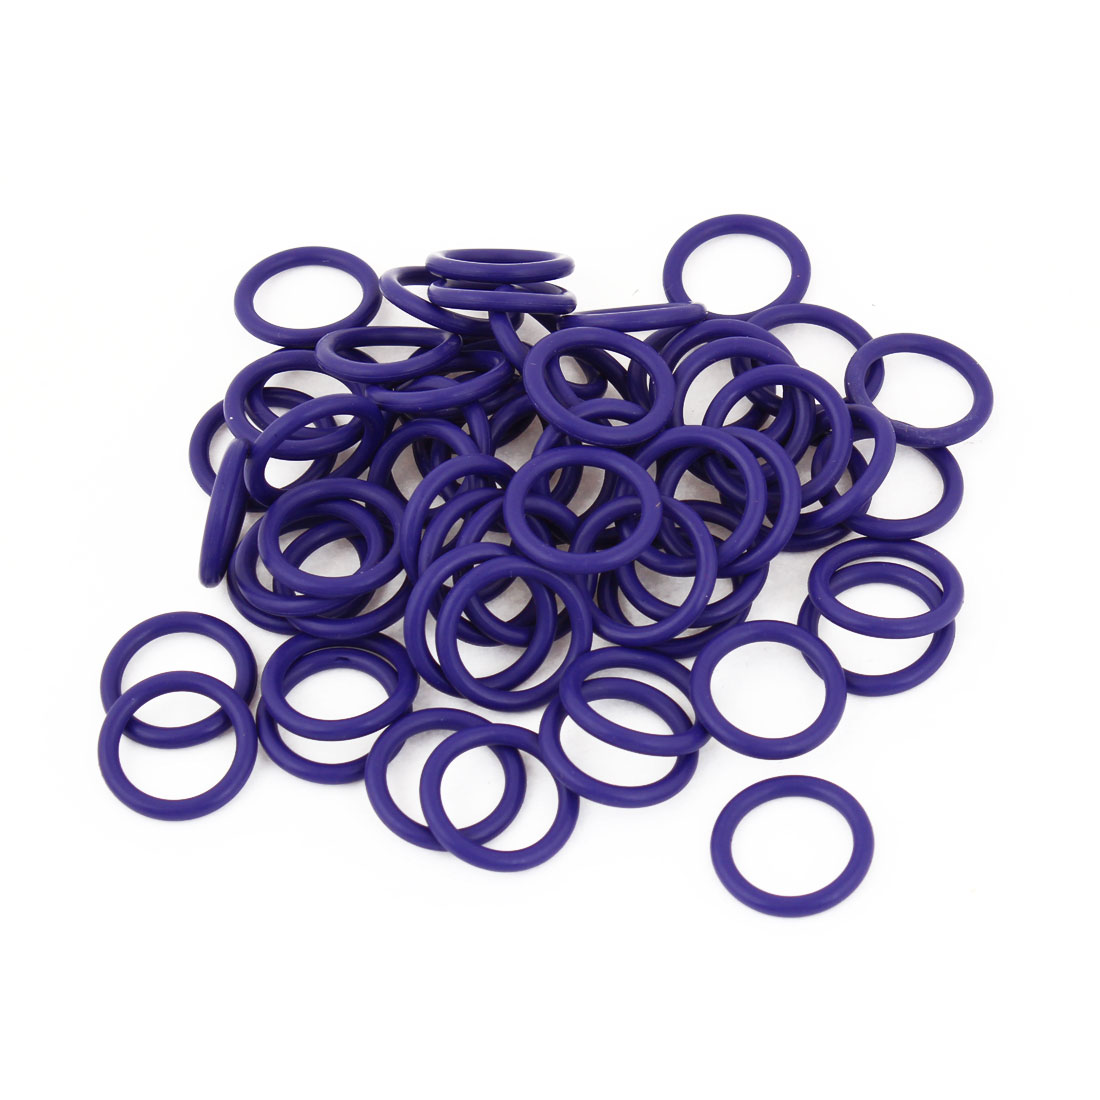 100 Pcs 19 x 15 x 2.5mm HNBR Air Condition O Rings Purple for Auto Car